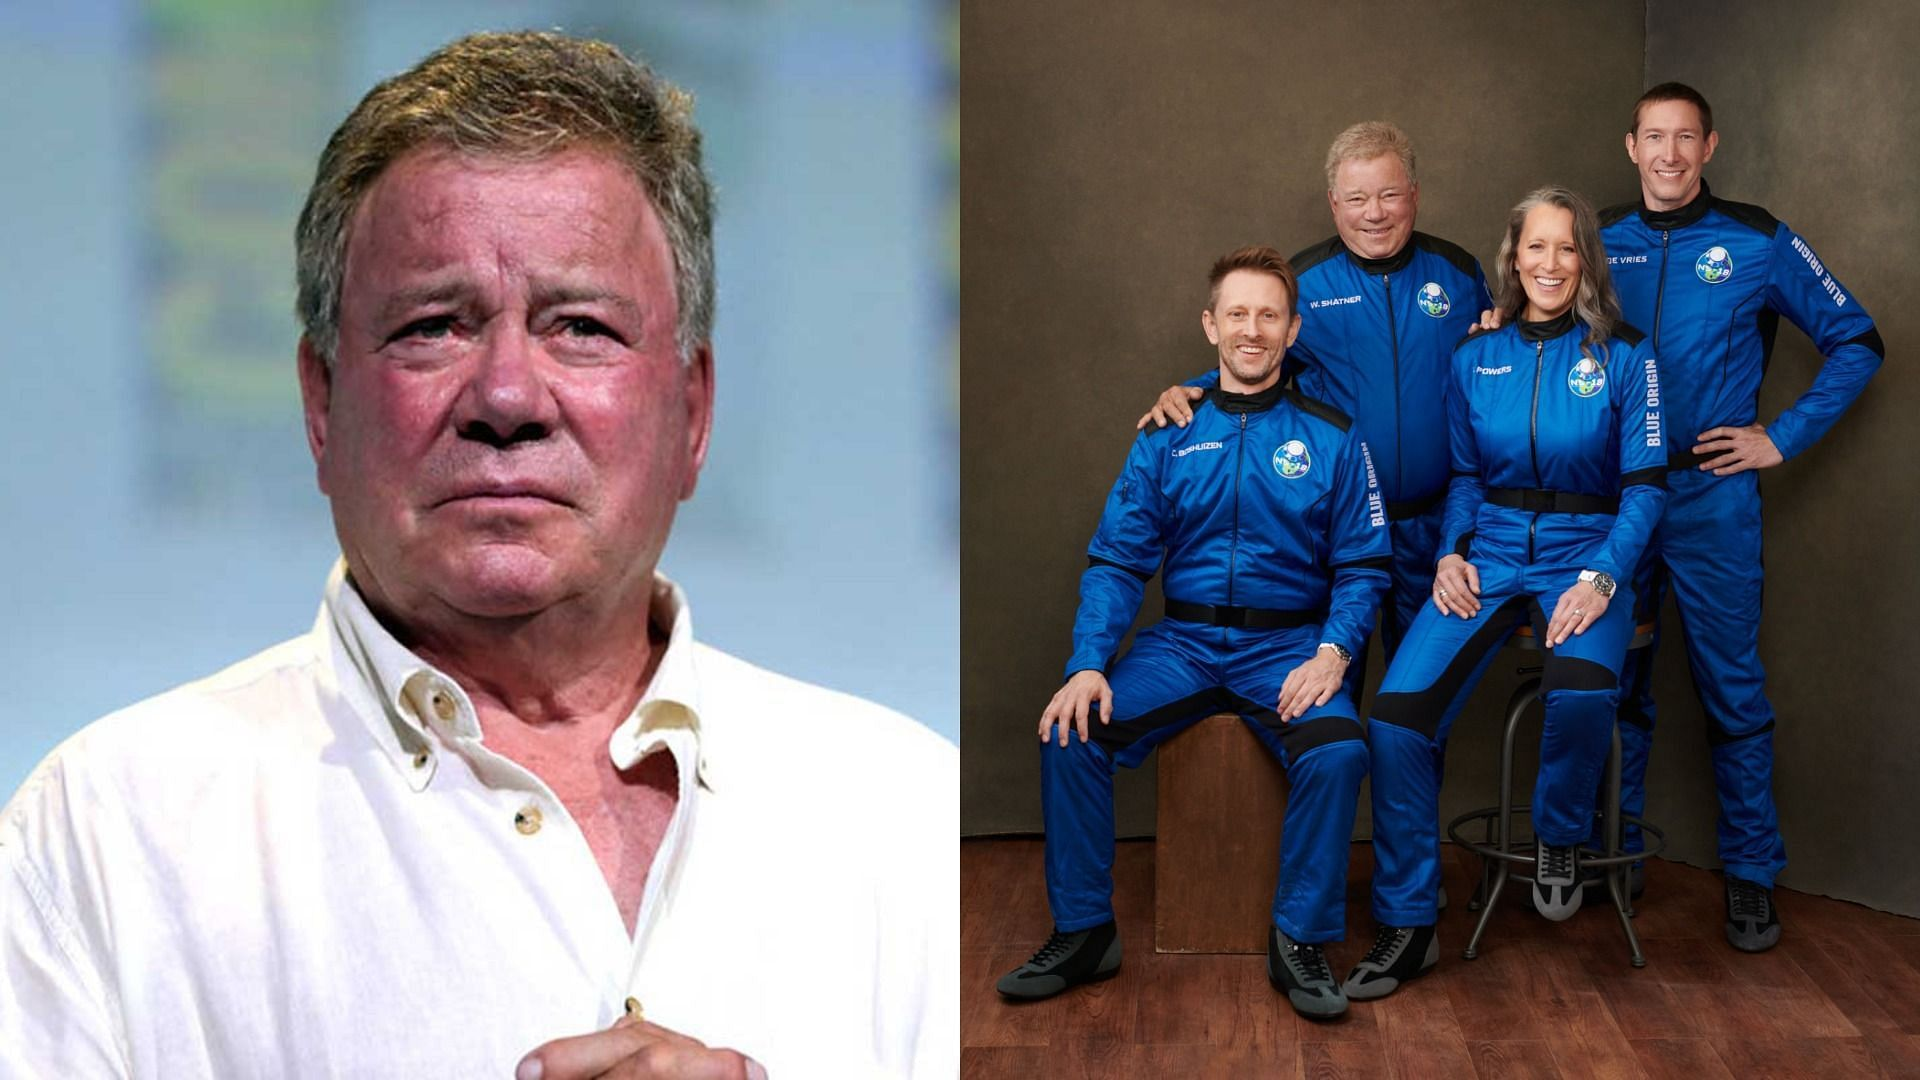 William Shatner is officially the oldest person to fly to space (Image via Getty Images and Blue Origin/Twitter)